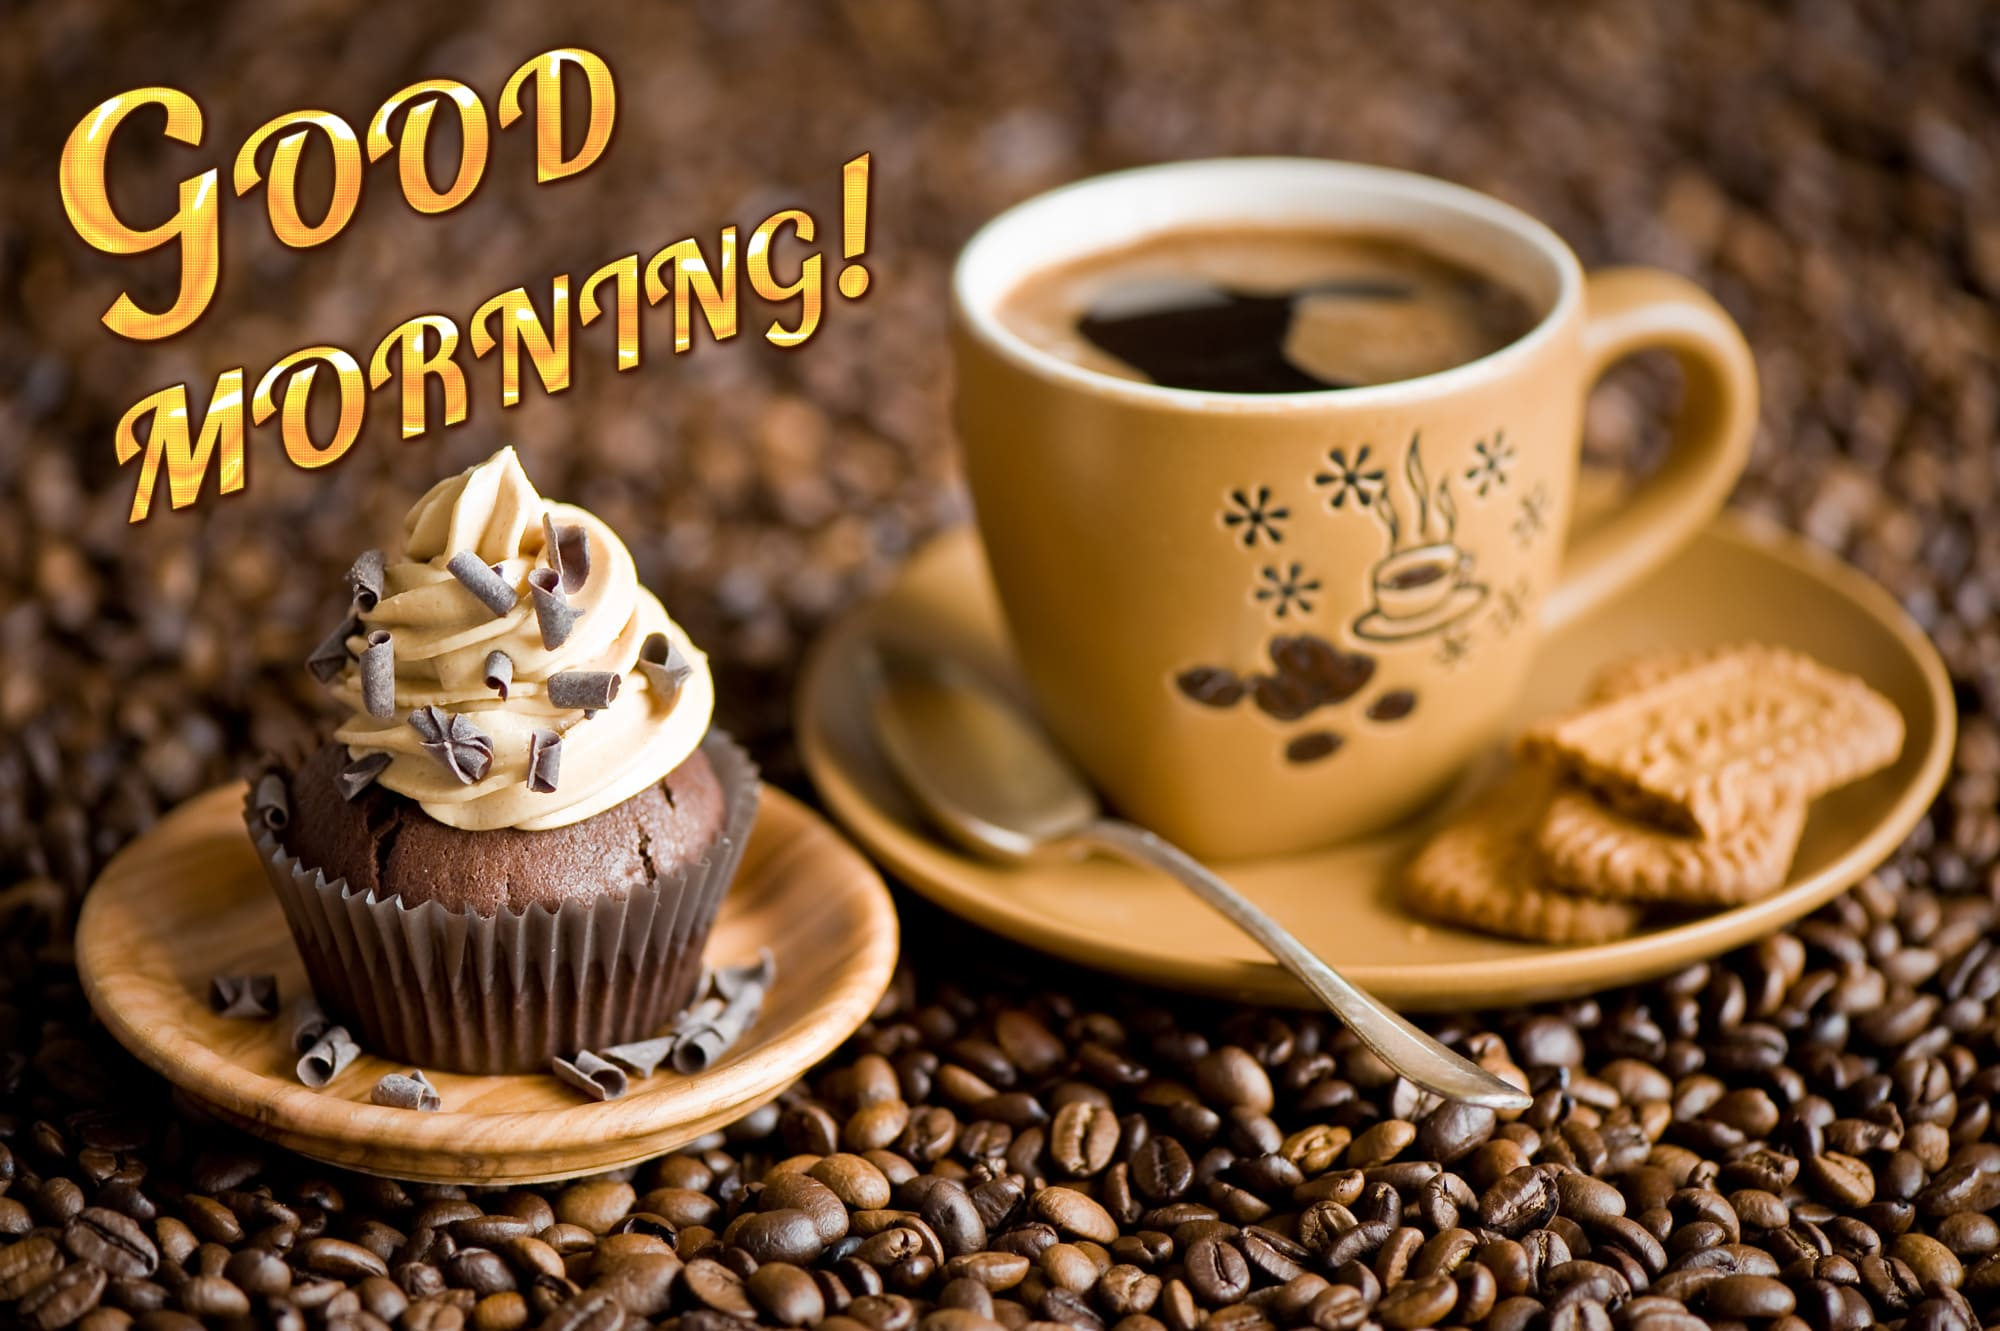 Beautiful Pictures of Good Morning Wishes. Big collection